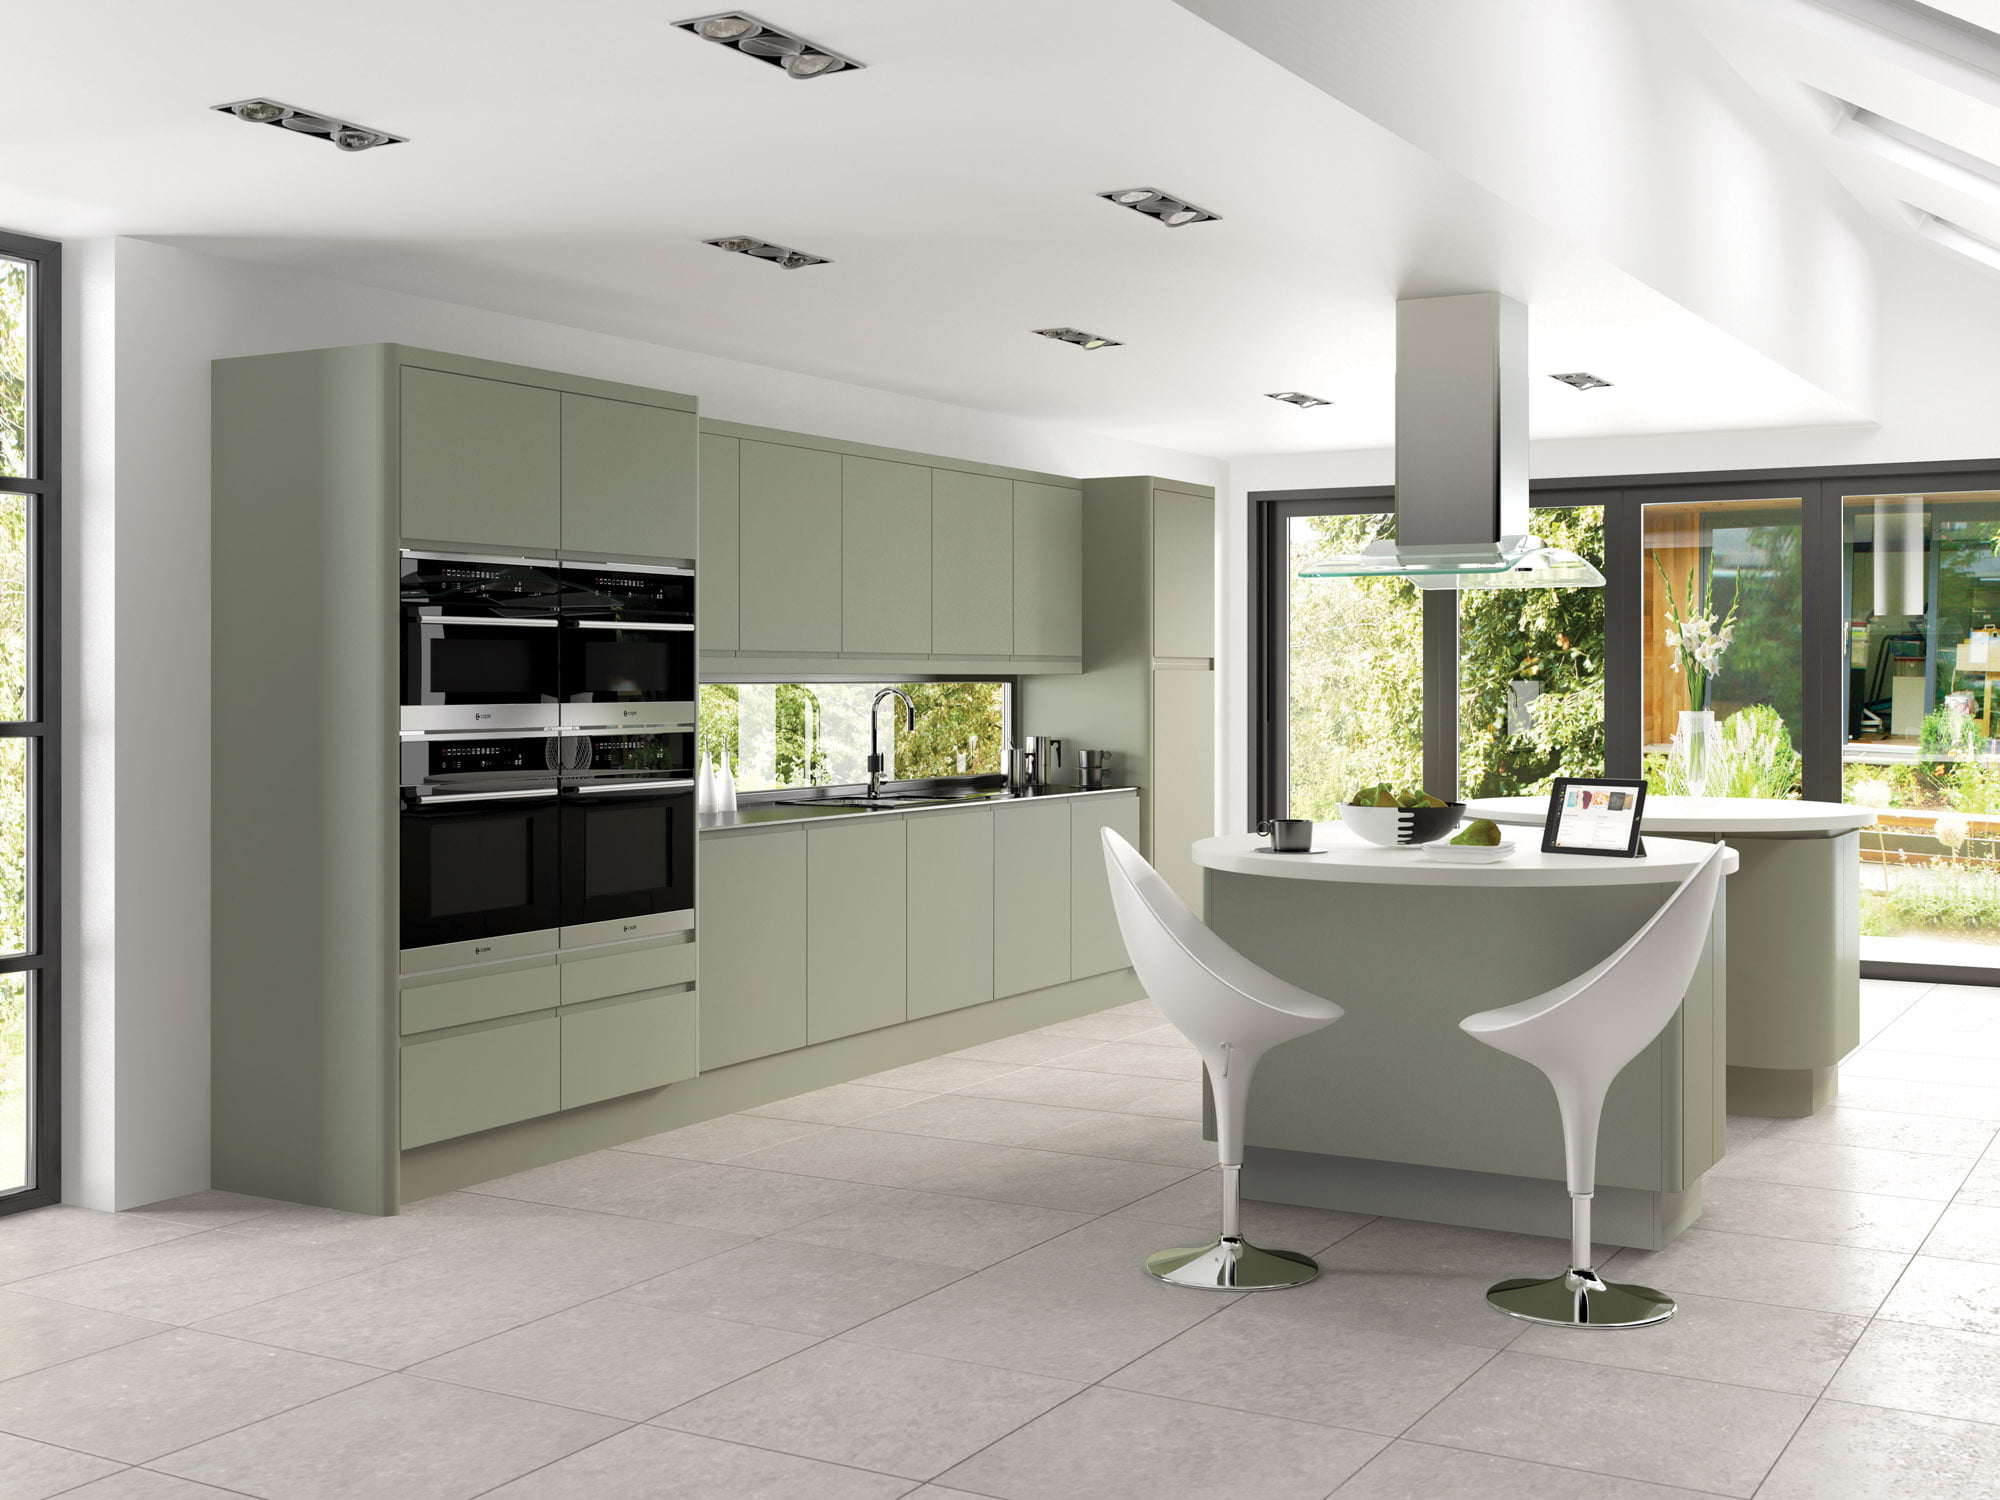 Kitchens Direct Kitchens Sheffield Buy Quality Fitted Kitchens Direct